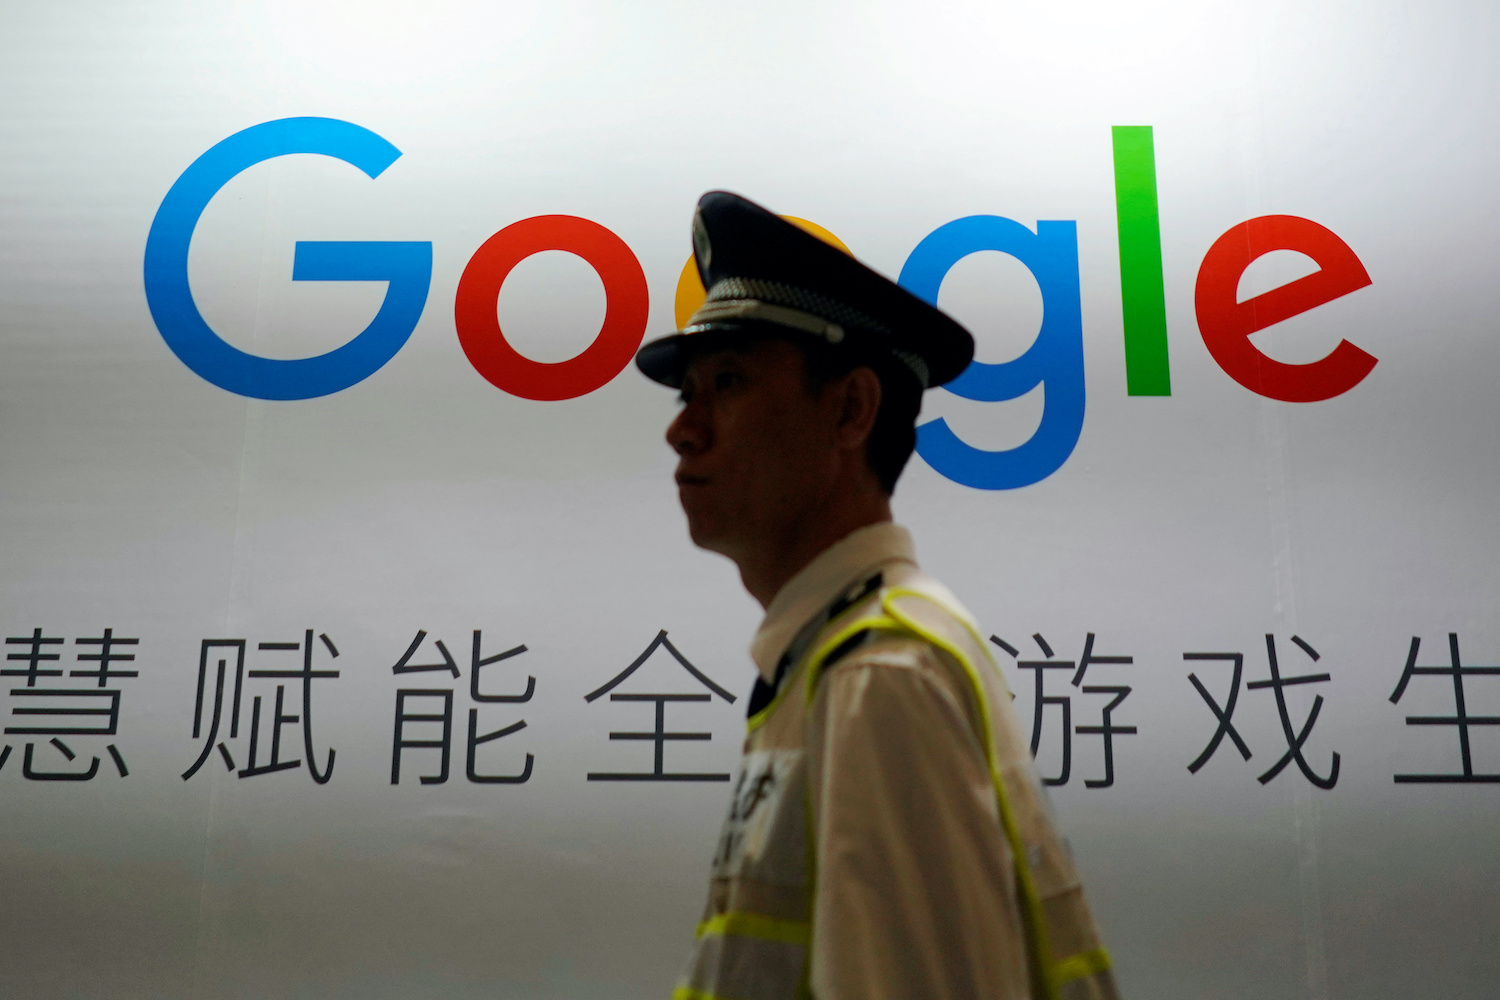 A security guard walks past a Google sign at the China Digital Entertainment Expo in Shanghai in 2018. (Reuters File Photo)